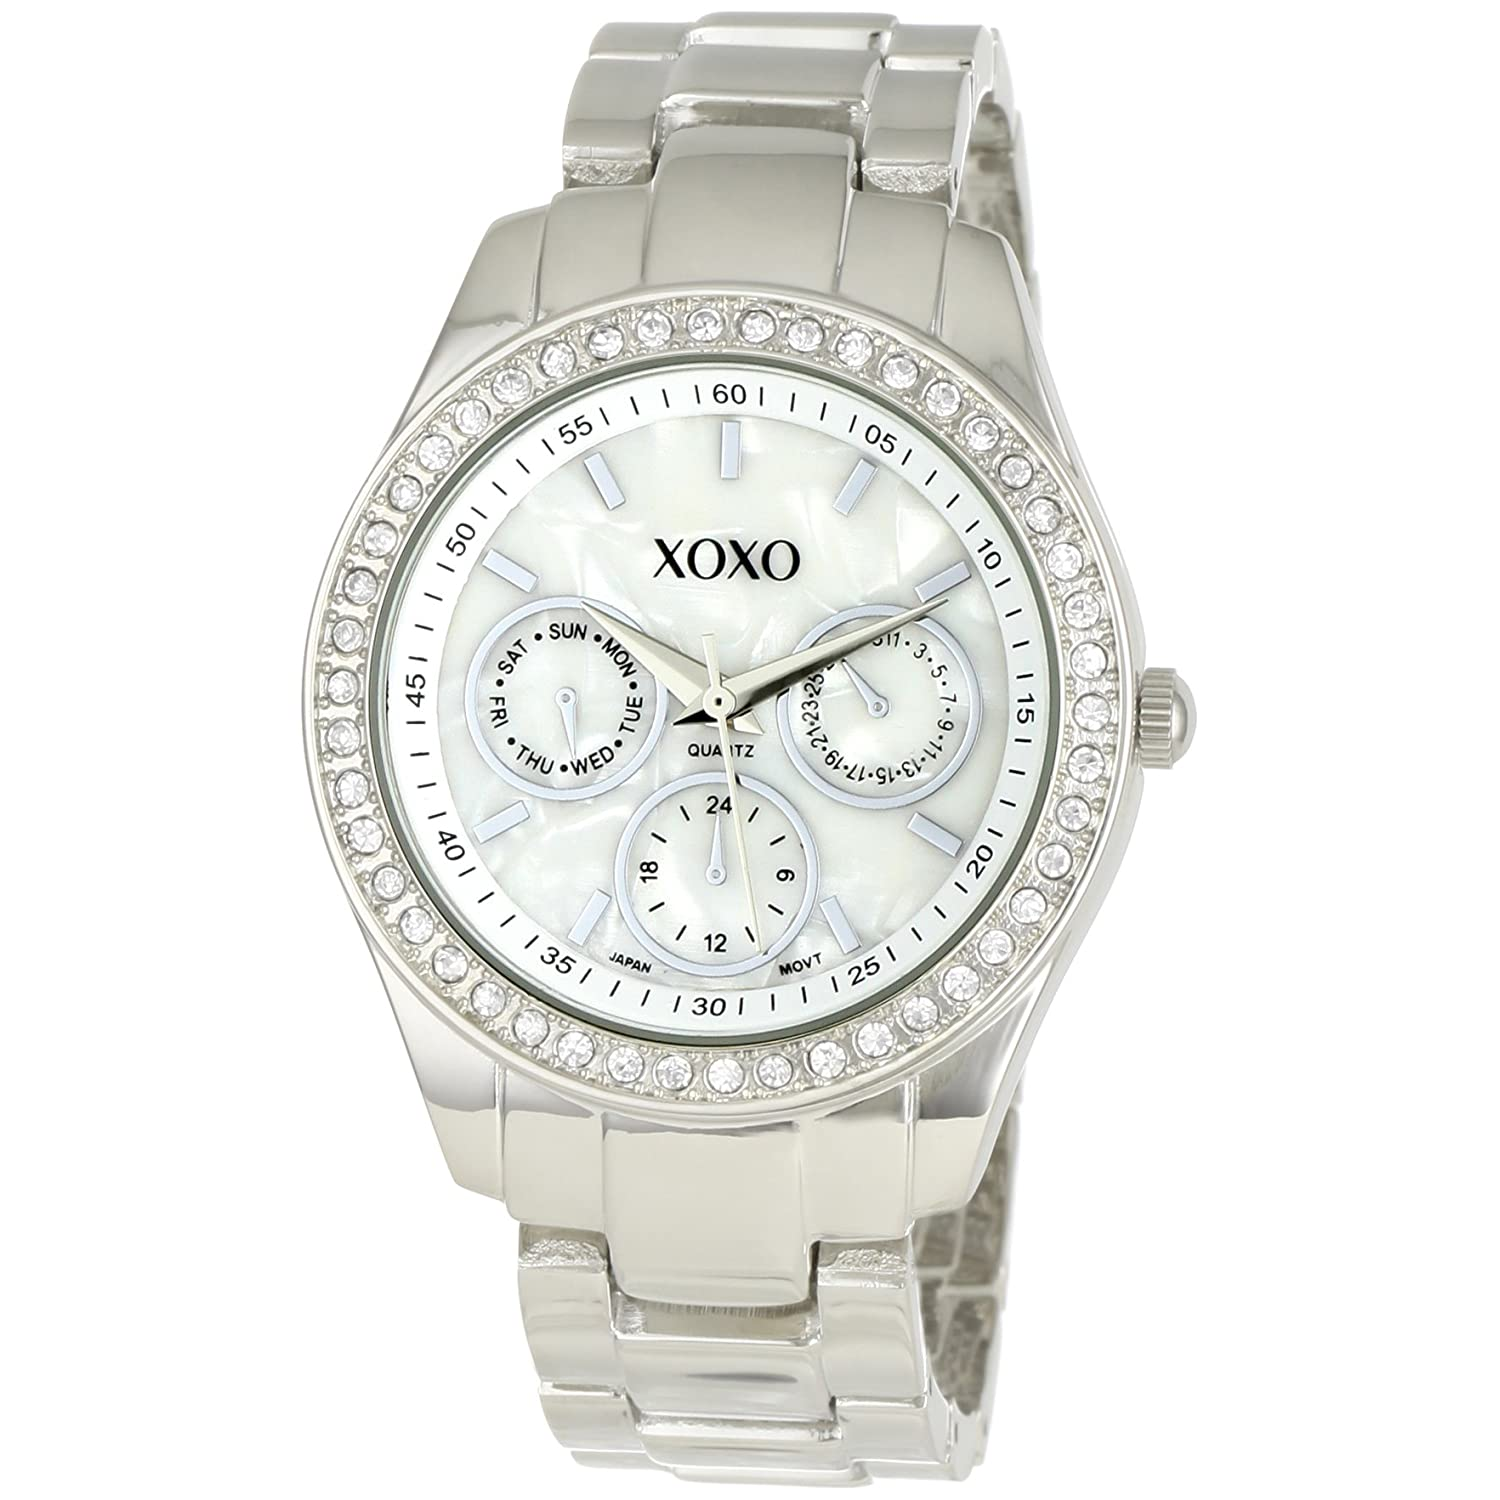 Women 39 s watches xoxo women 39 s xo5301a rhinestone accent silver tone bracelet watch was sold for for Watches xoxo